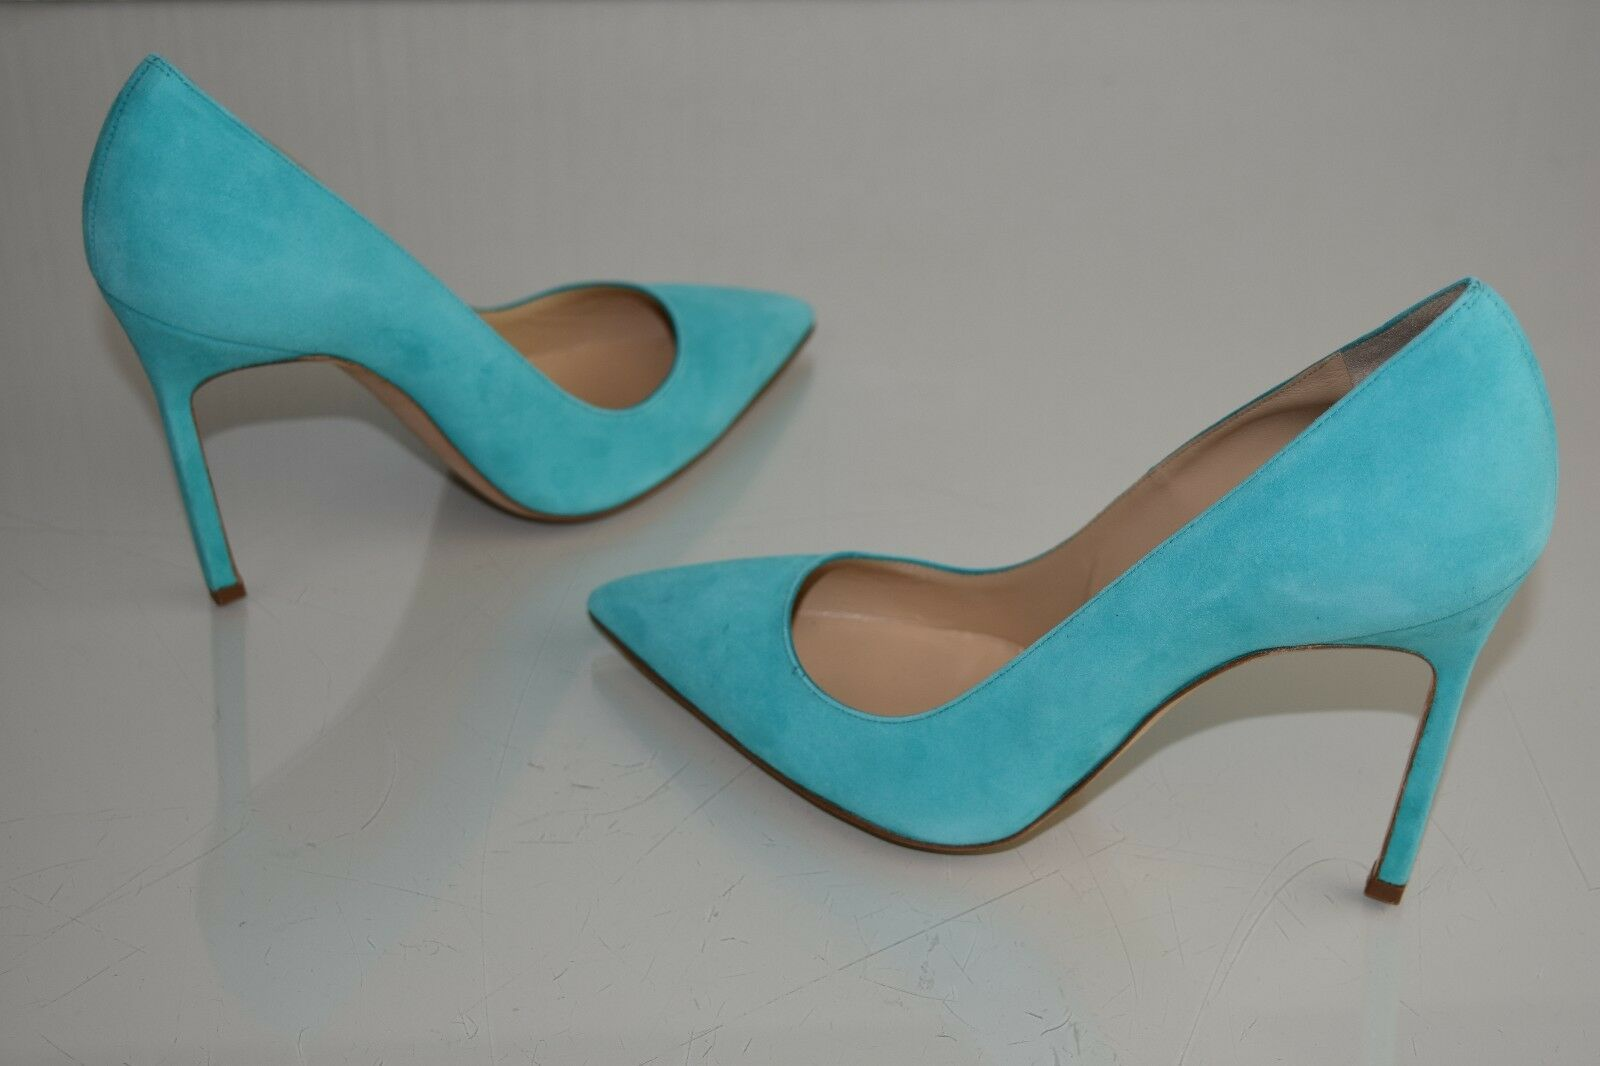 NEW MANOLO BLAHNIK BB 105 PUMPS SUEDE TURQUOISE TURQUOISE TURQUOISE schuhe Heels 39 82f228